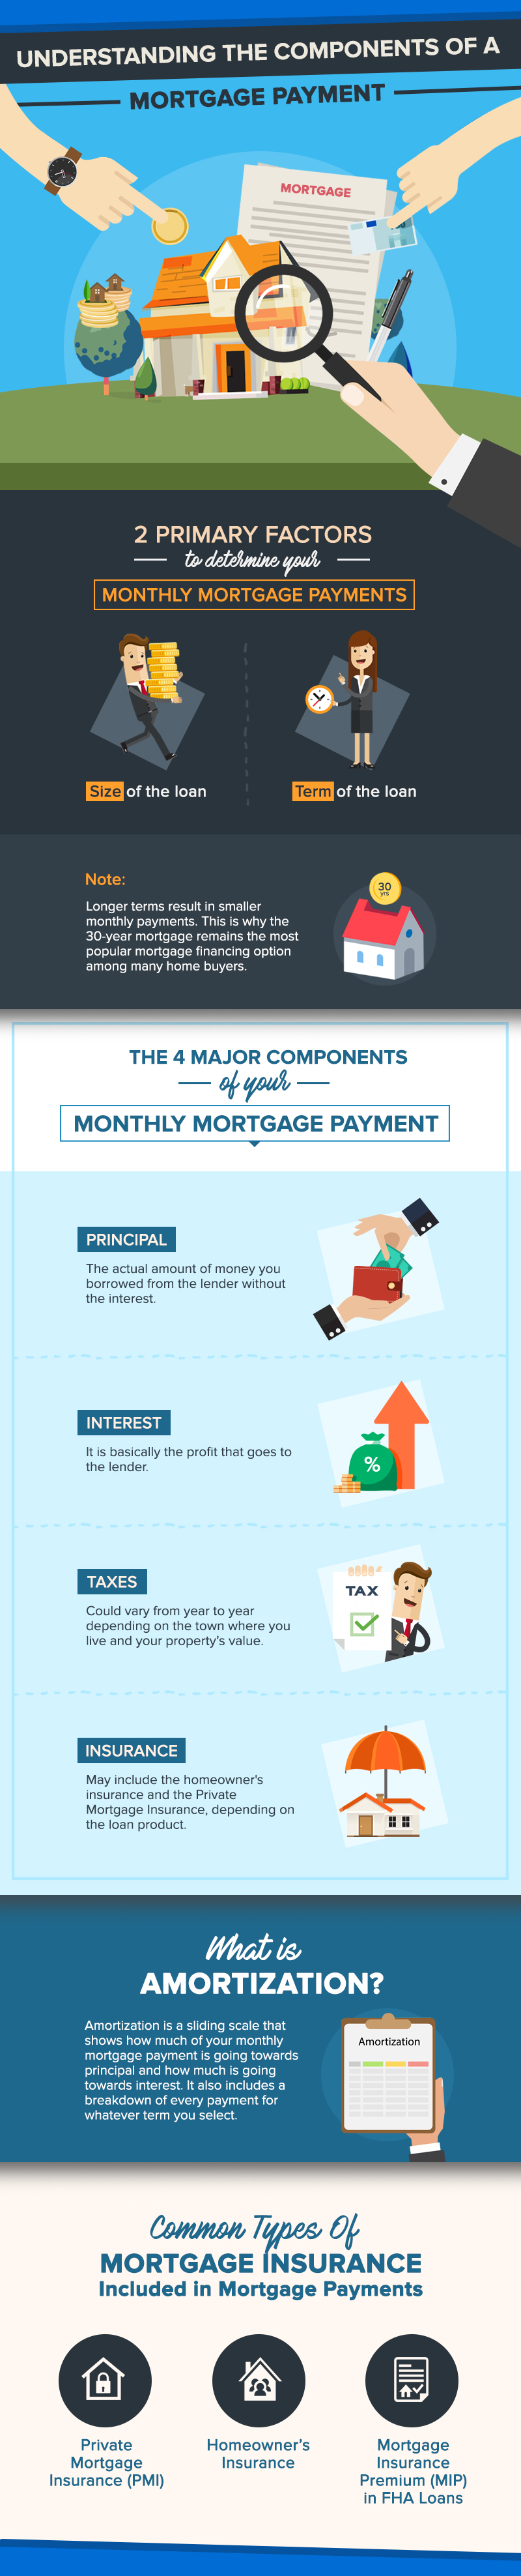 What's In A Mortgage? Breaking Down the Components of A Mortgage Payment